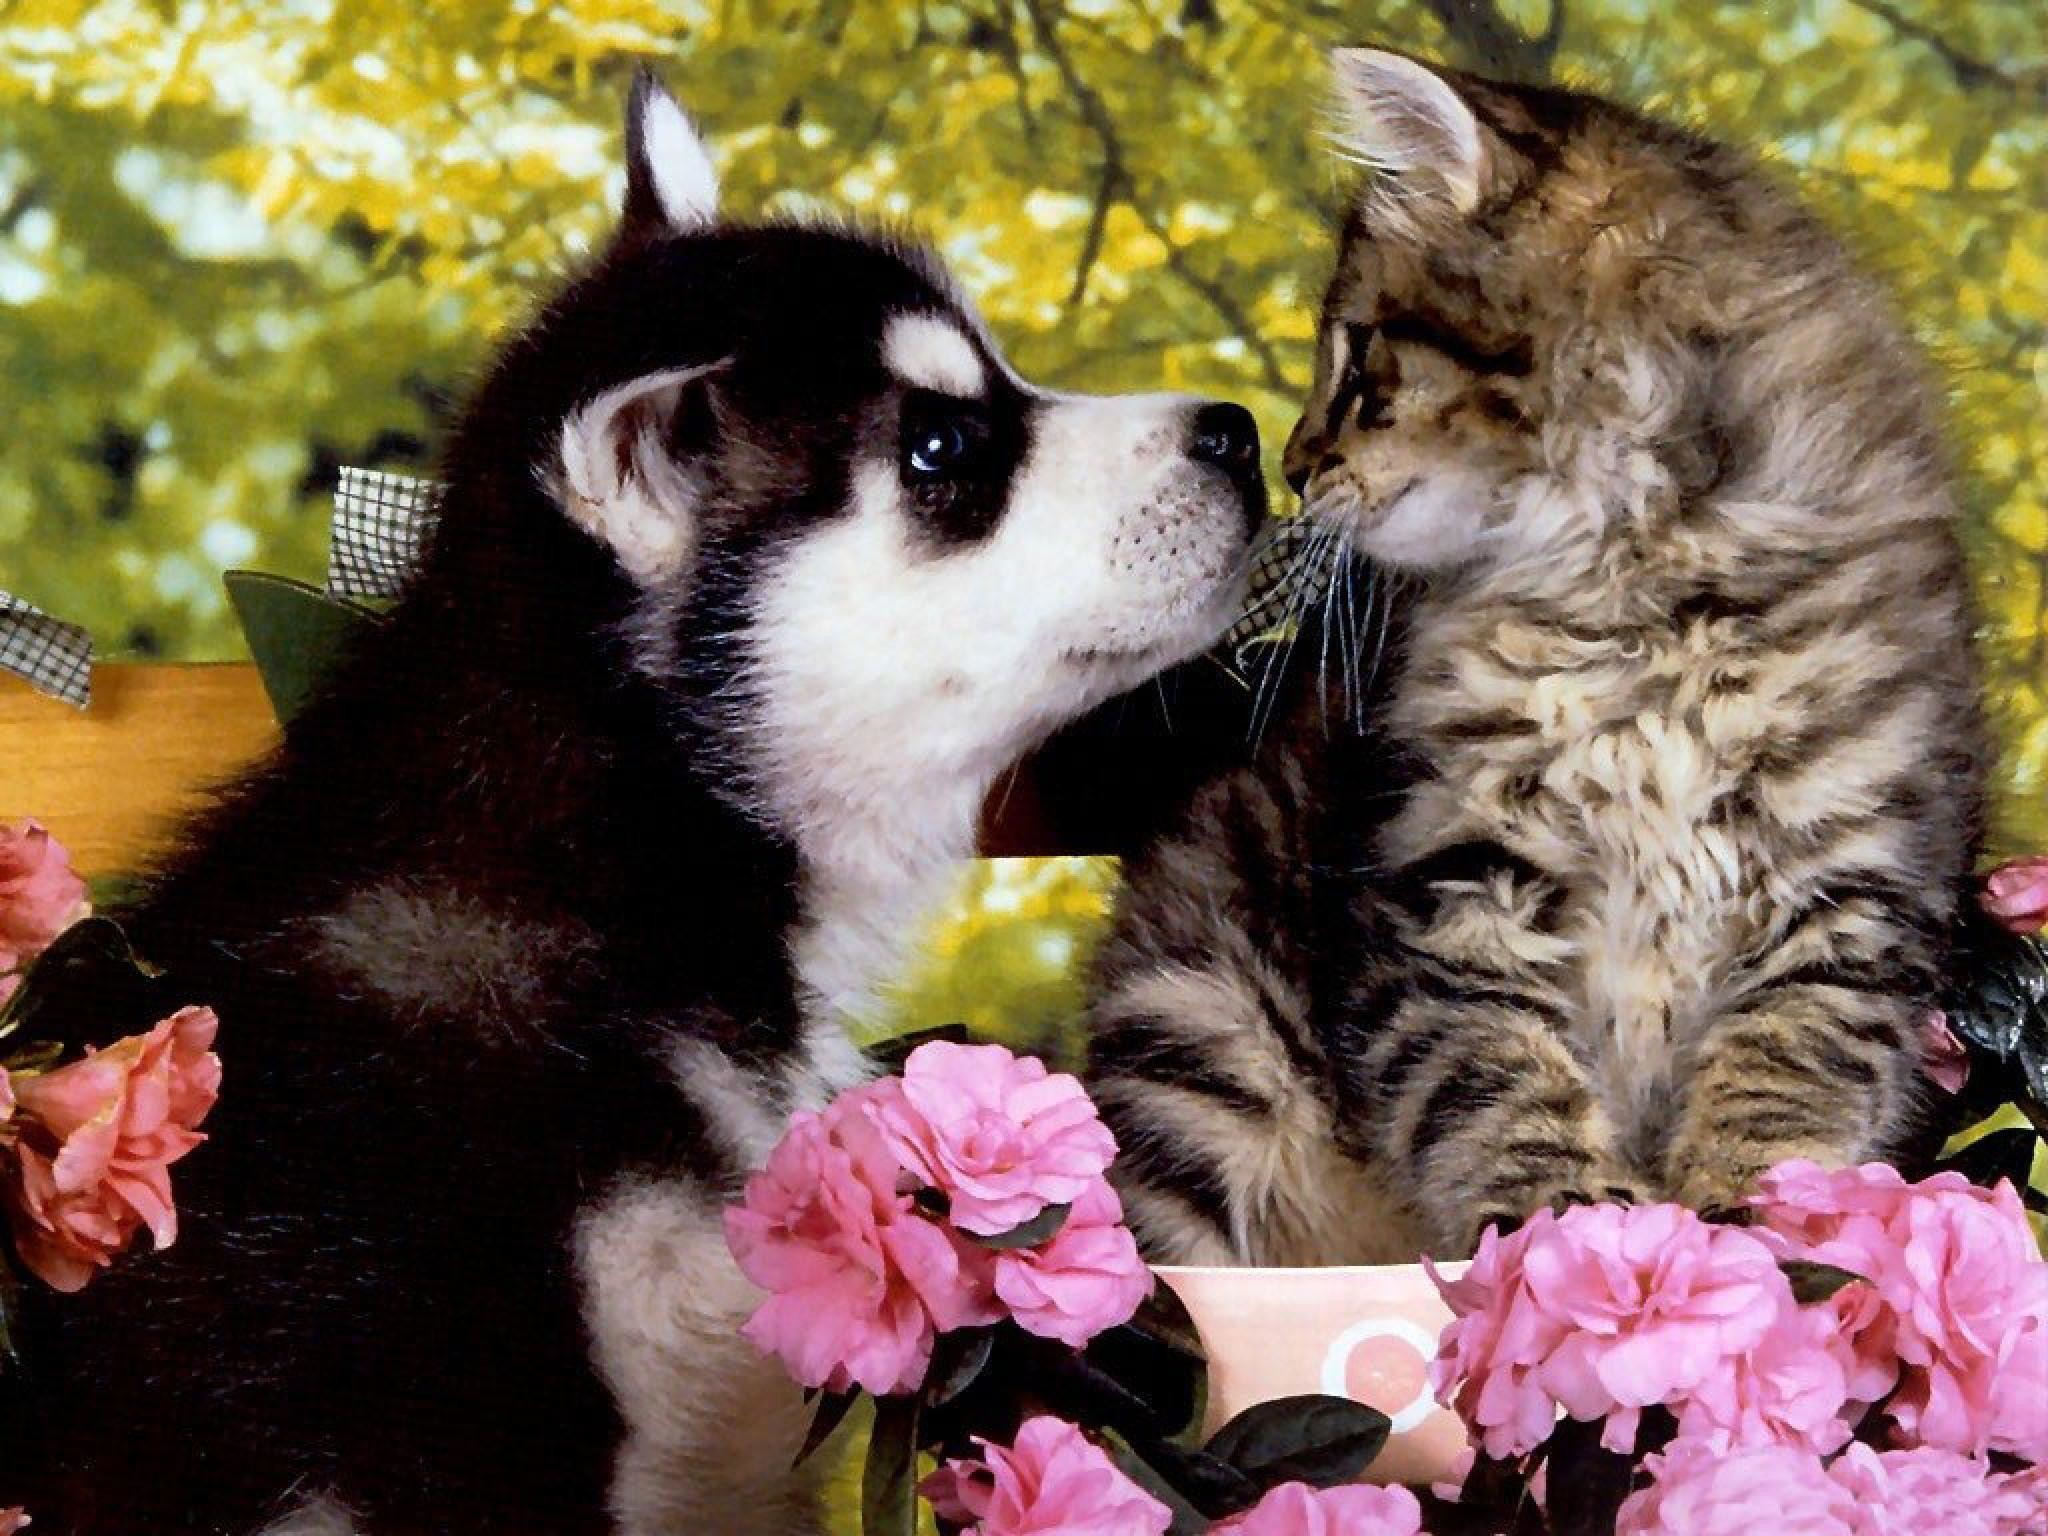 Cute friends – Puppies and kittens Wallpapers and Images – Desktop .